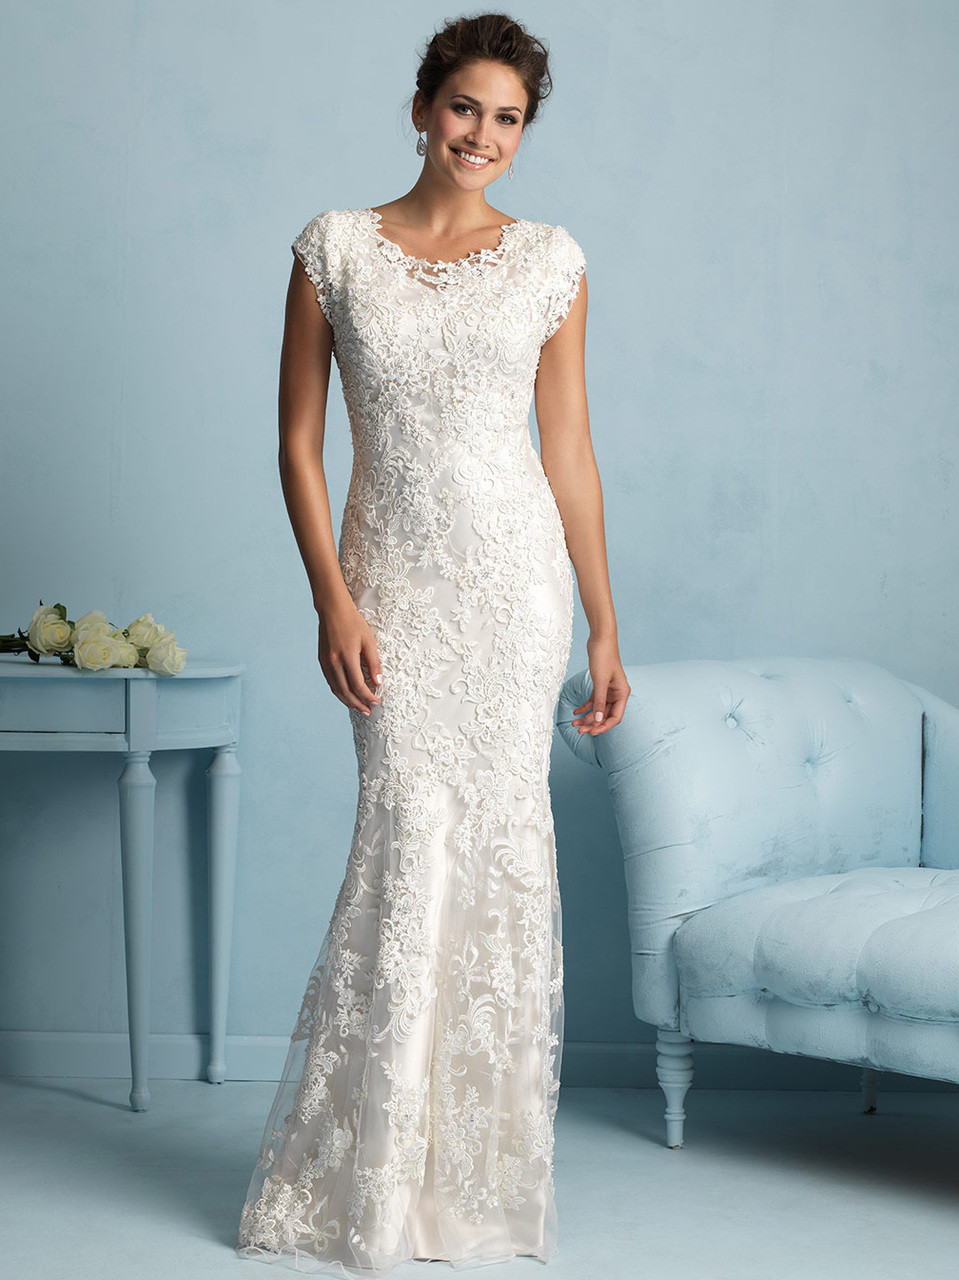 Form Fitting Lace Allure Modest Wedding Dress M536 Dimitra